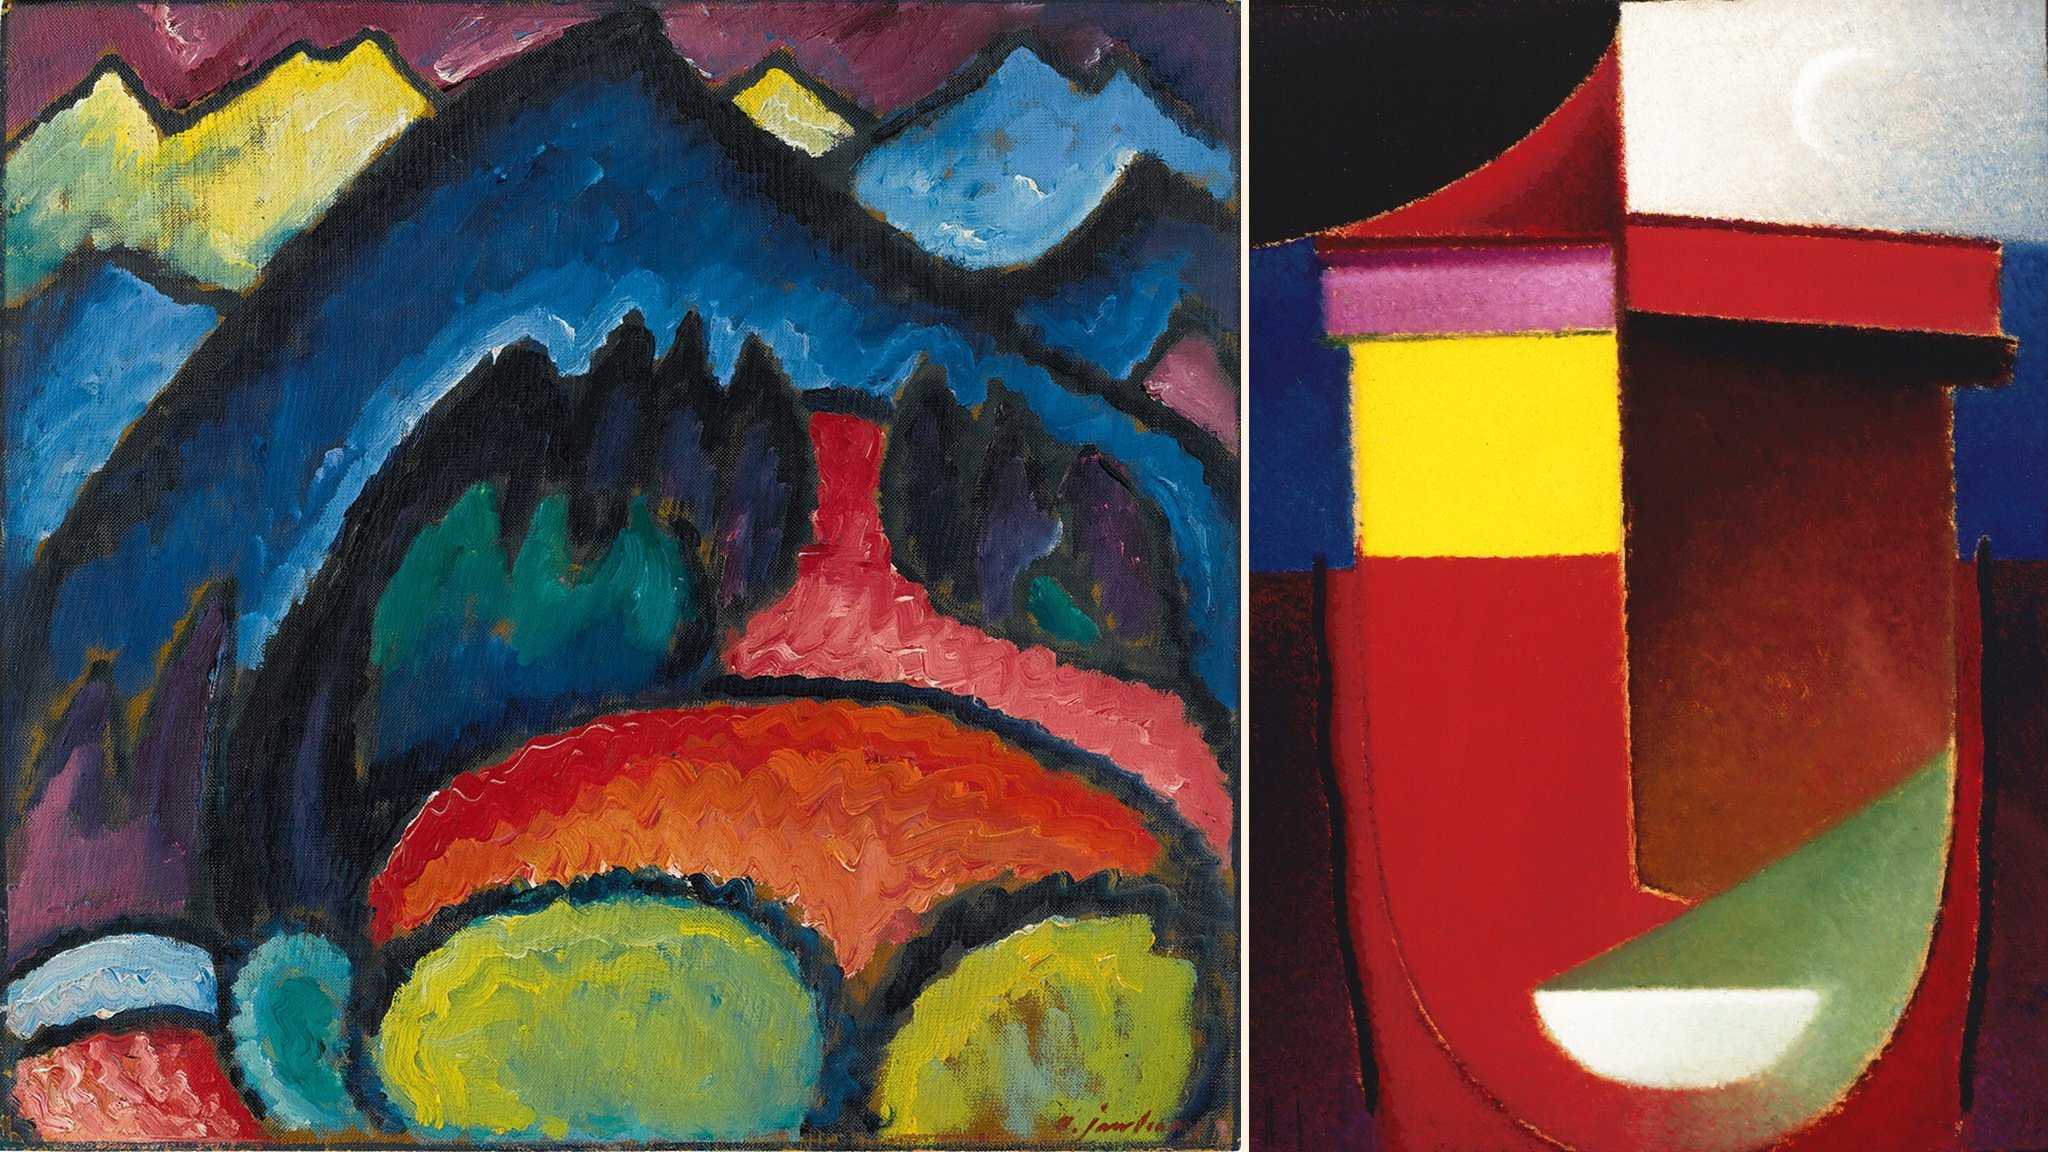 A glowing tribute to Alexei Jawlensky at